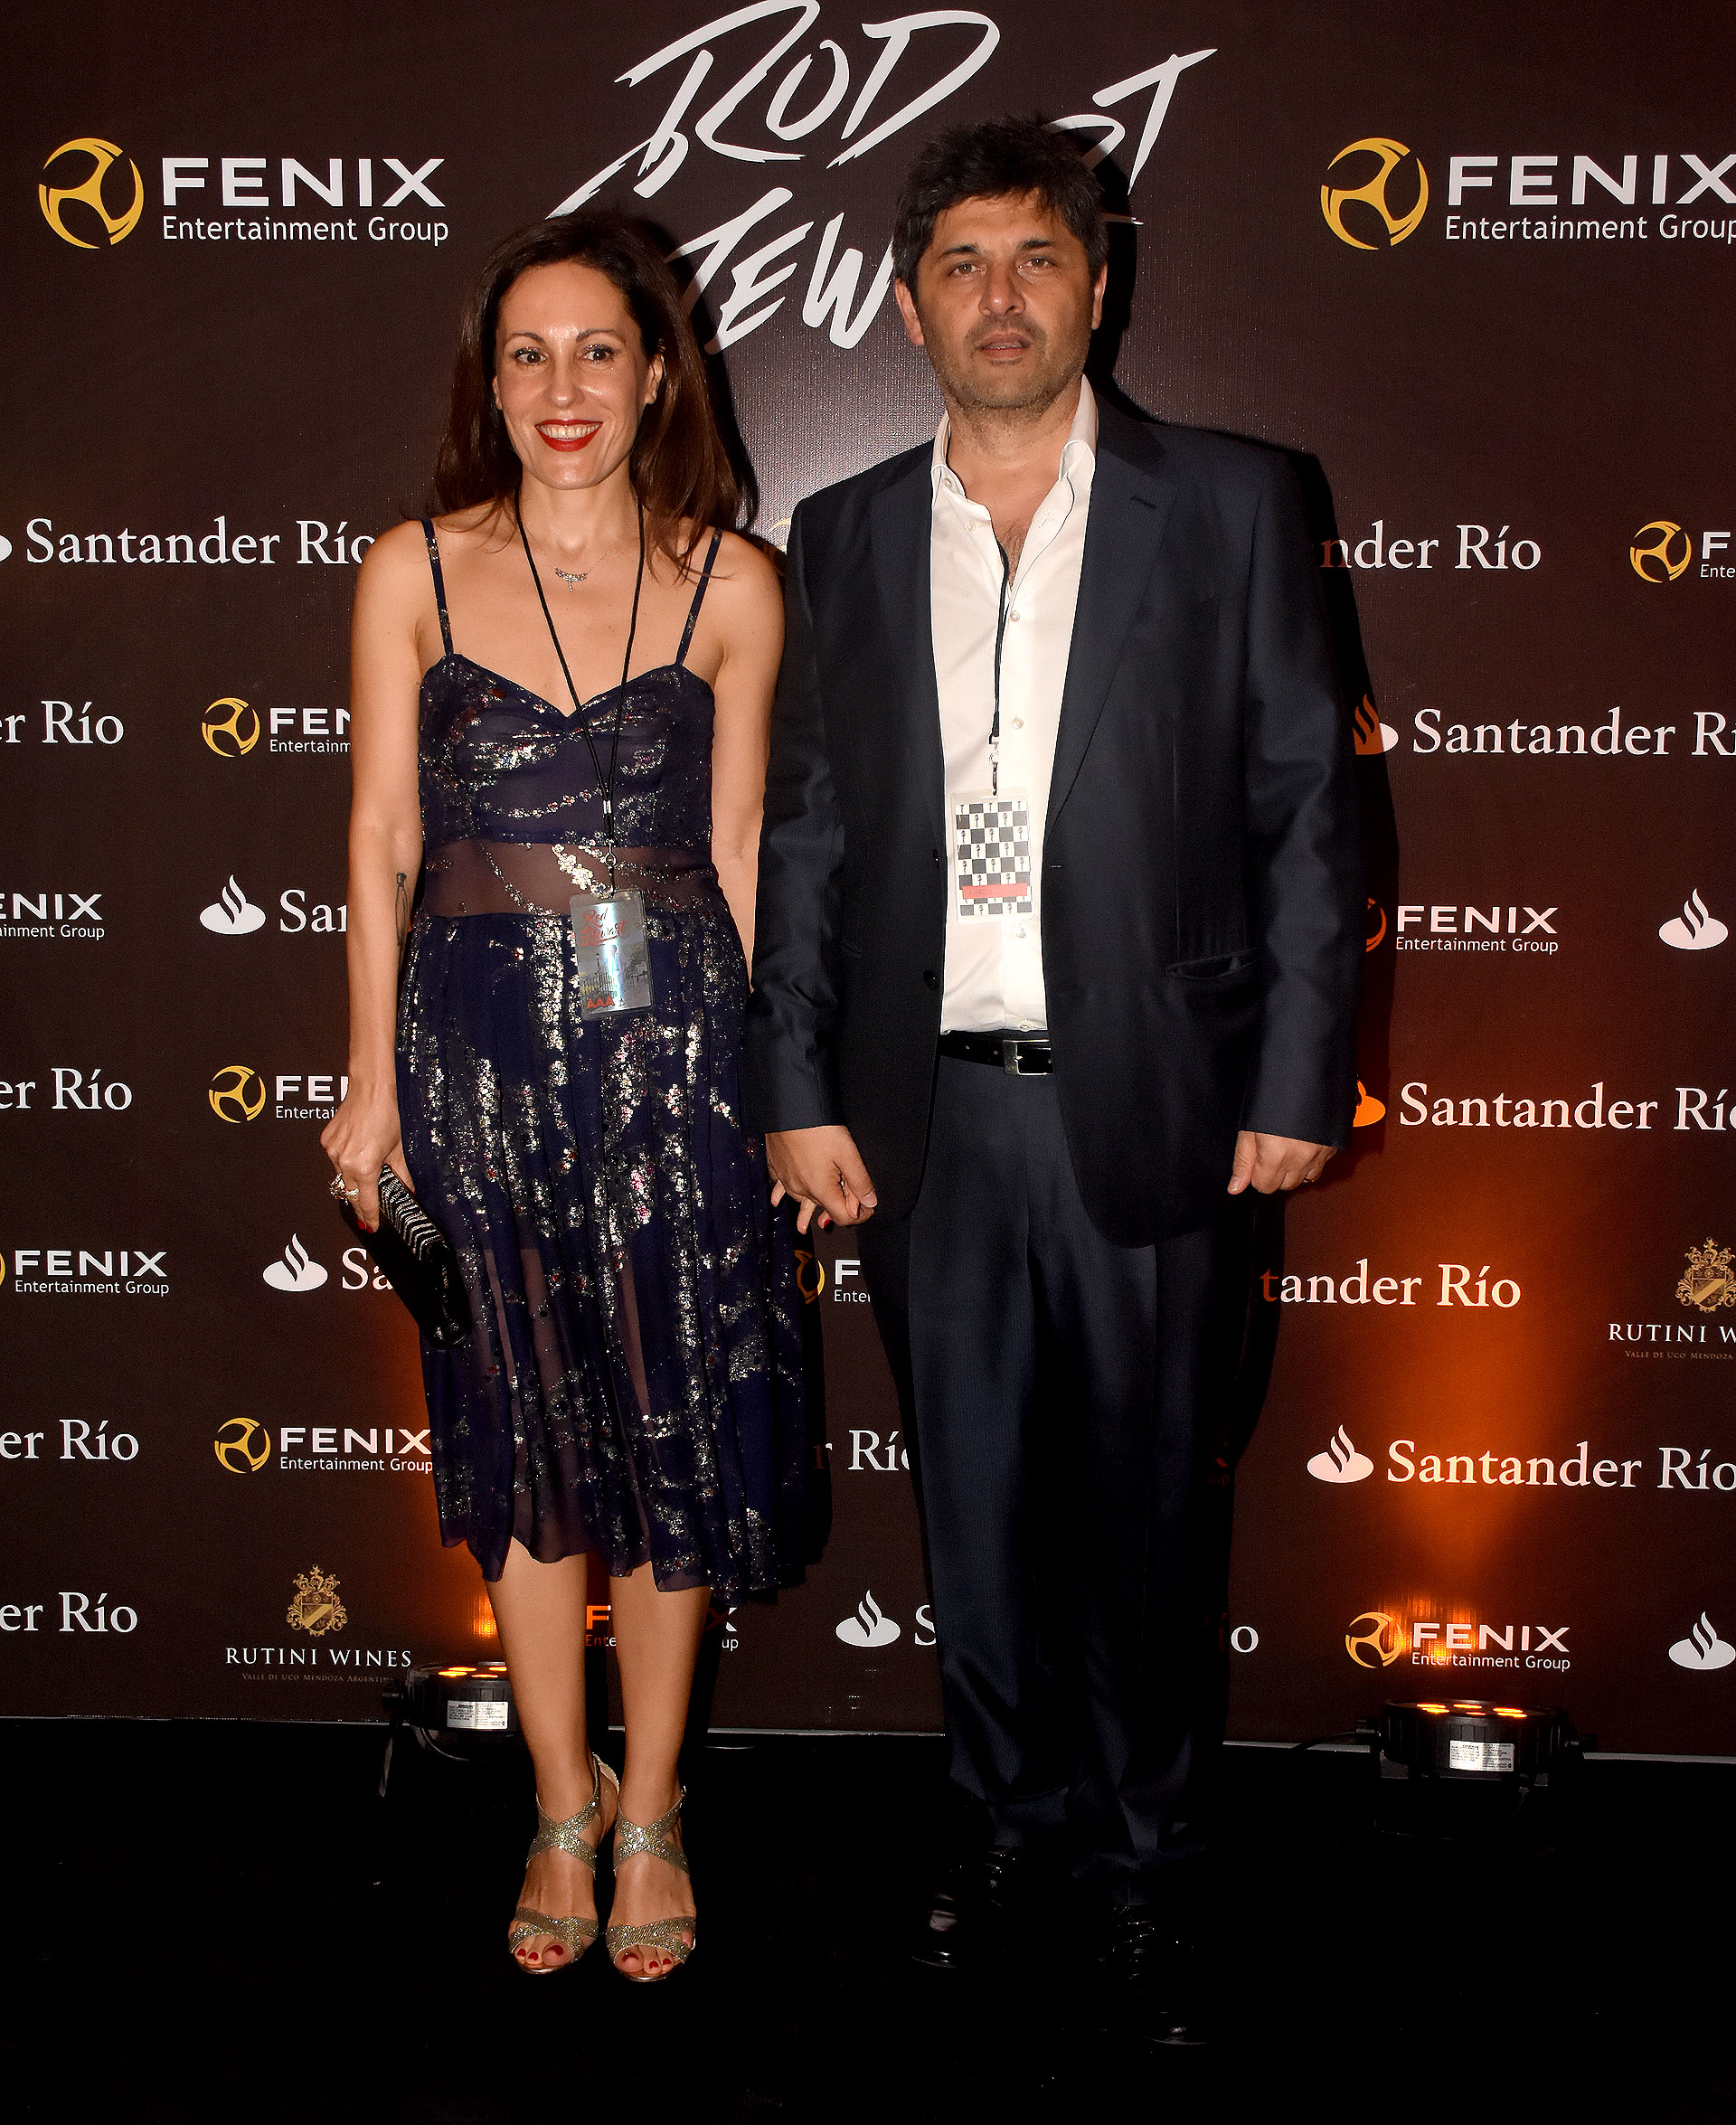 Gisela y Marcelo Fígoli (Fénix Entertainment Group)